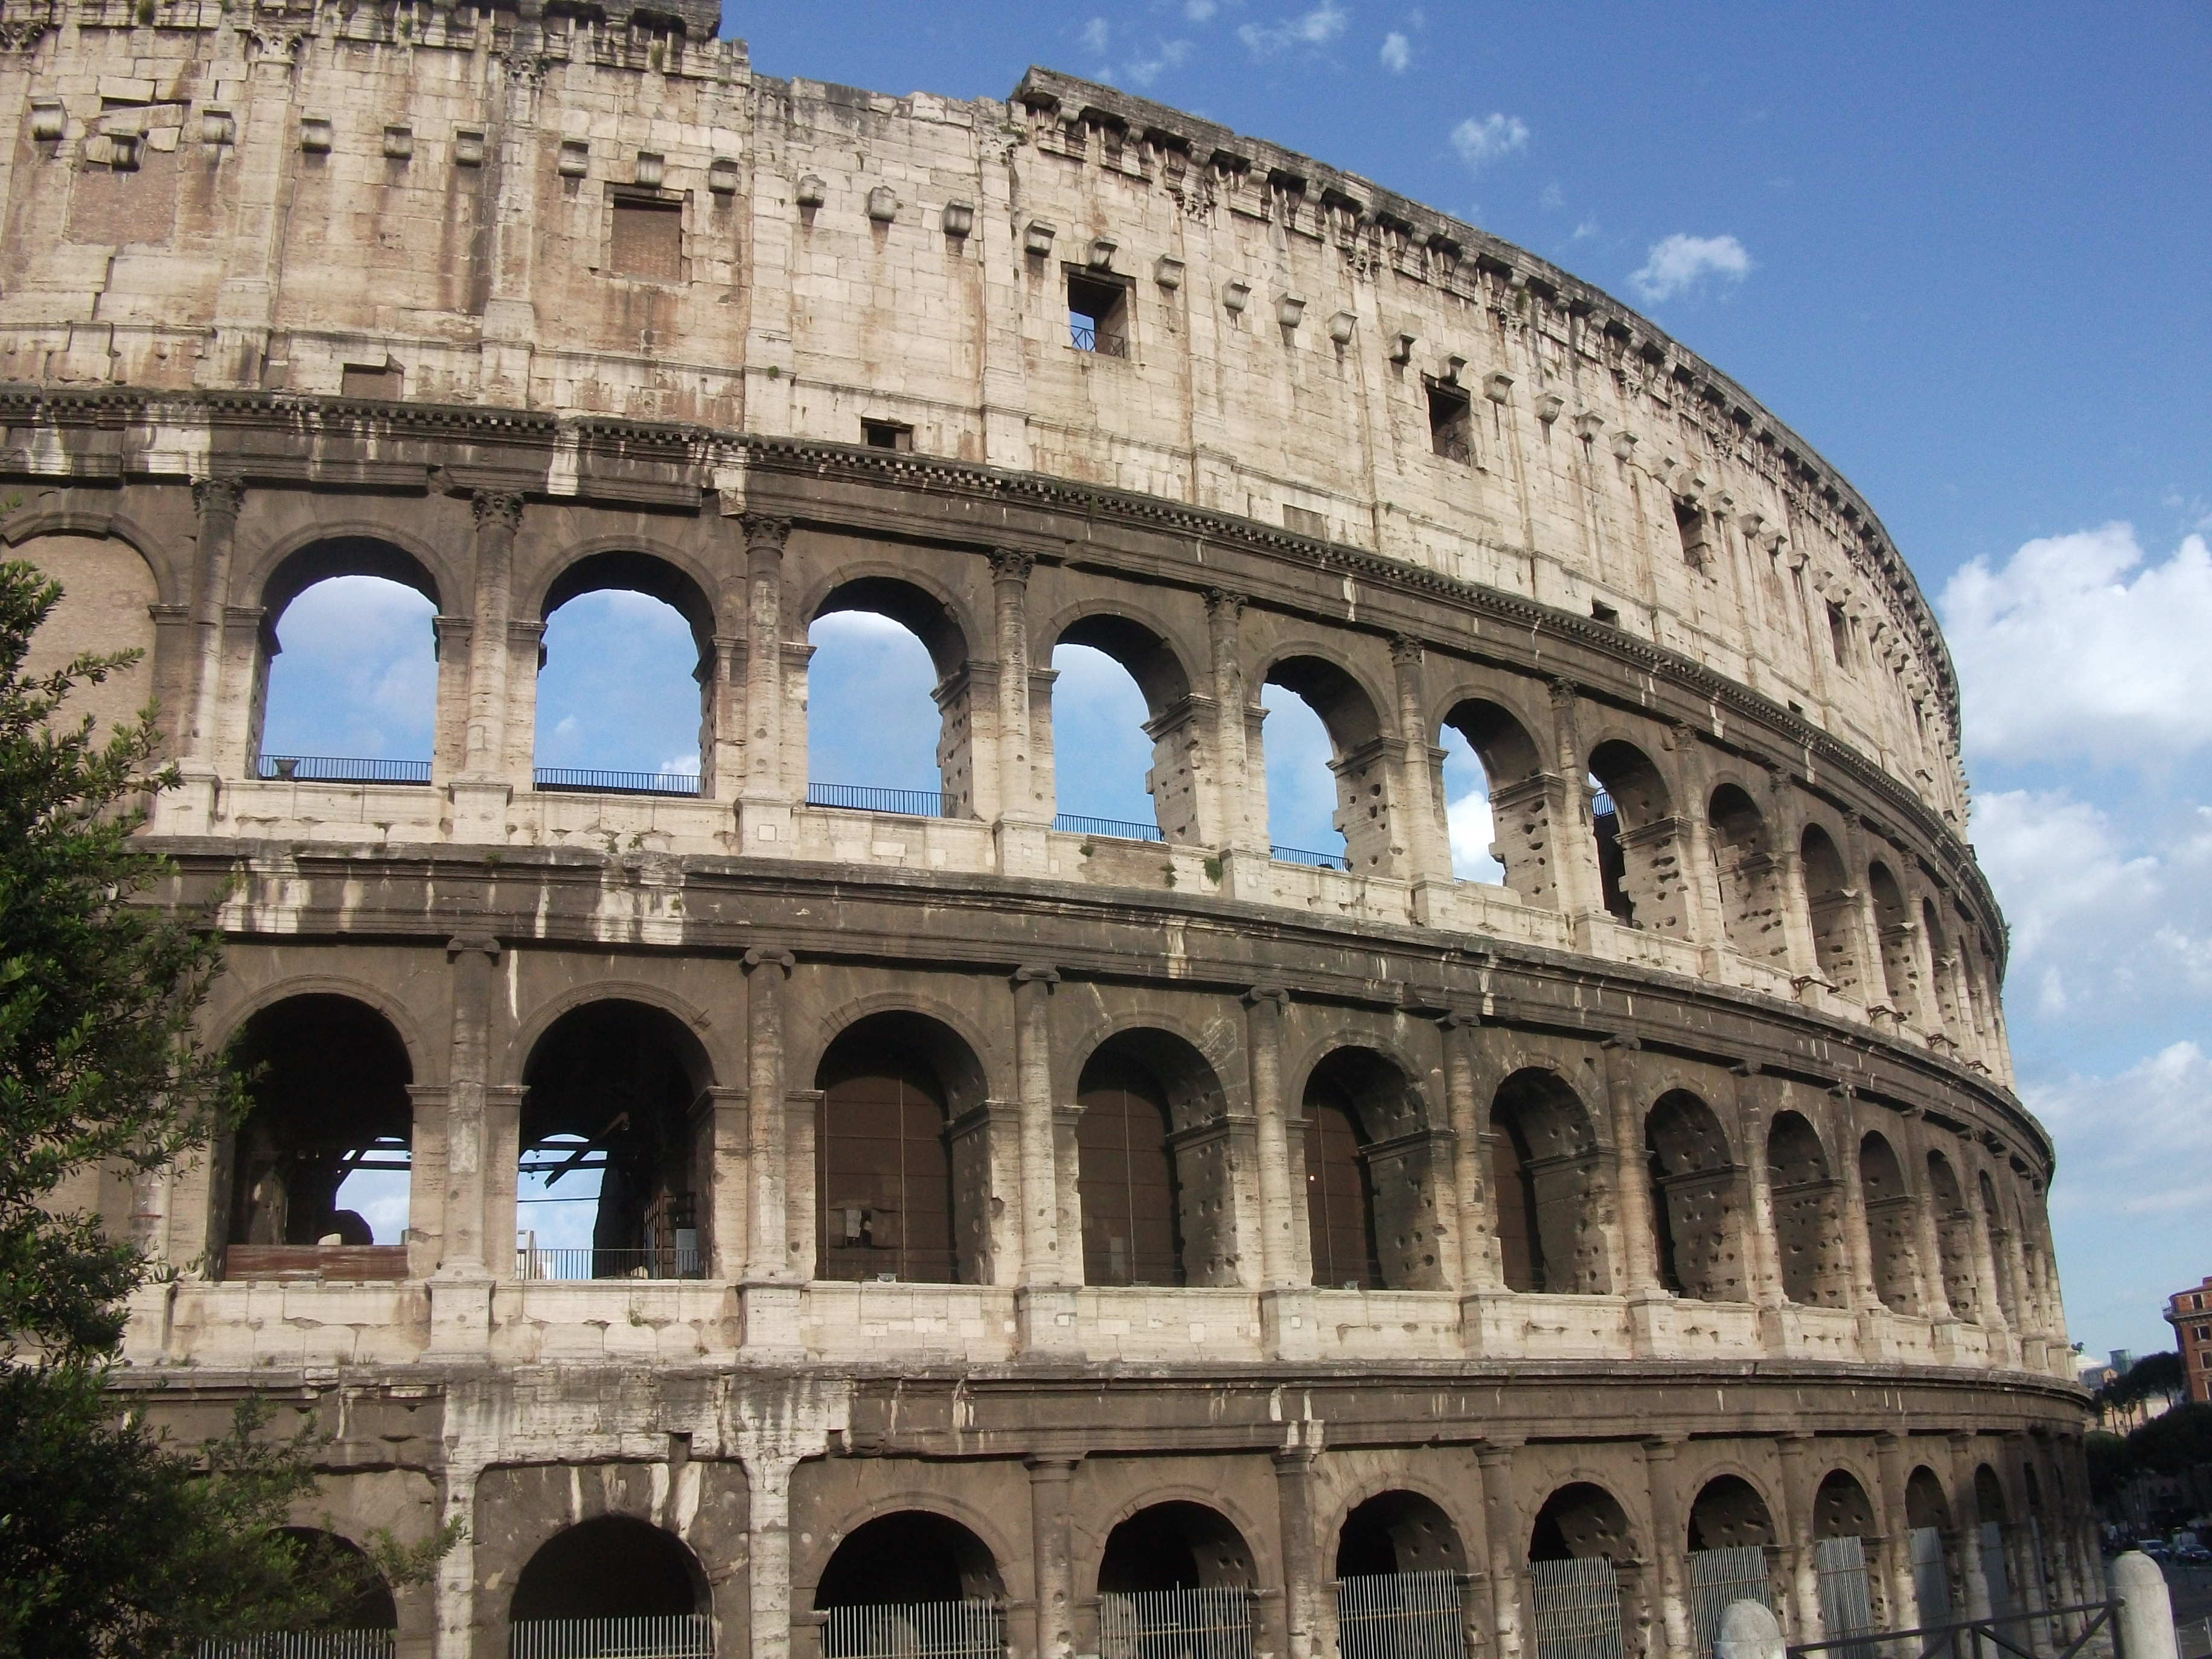 Sight seeing in Rome – How to get the best photos and ...